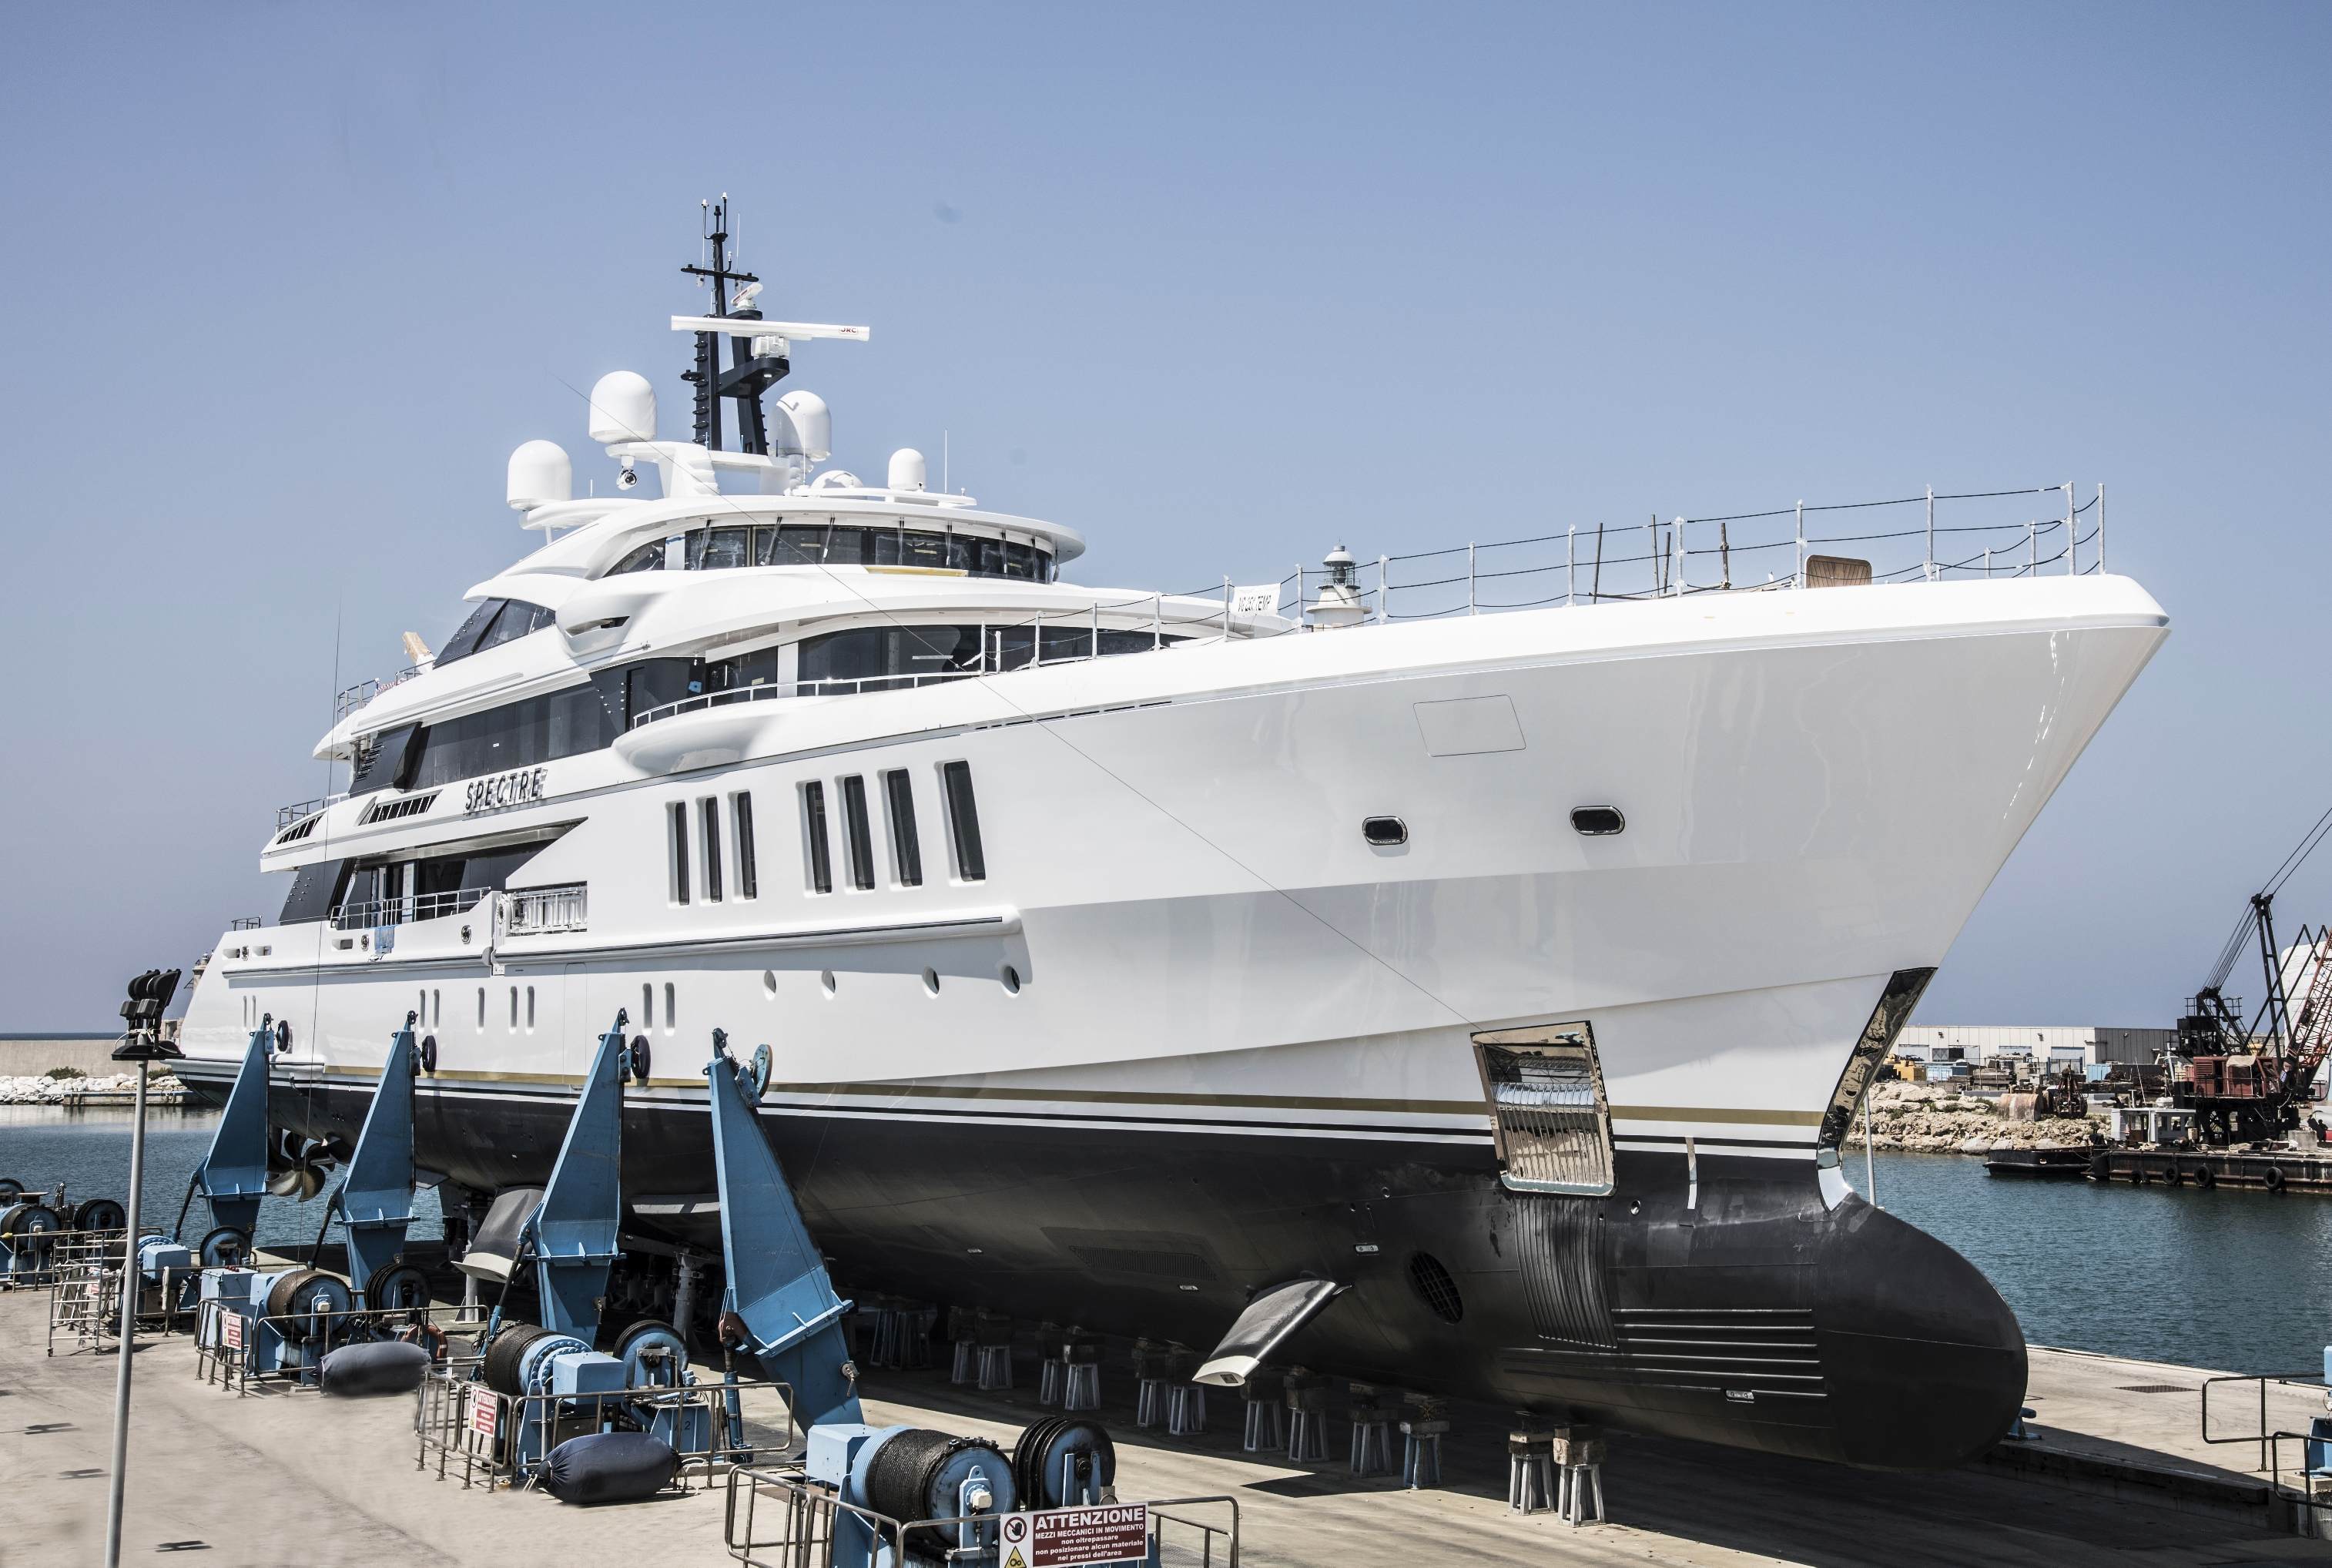 69-metre superyacht Spectre built for John Staluppi, with a